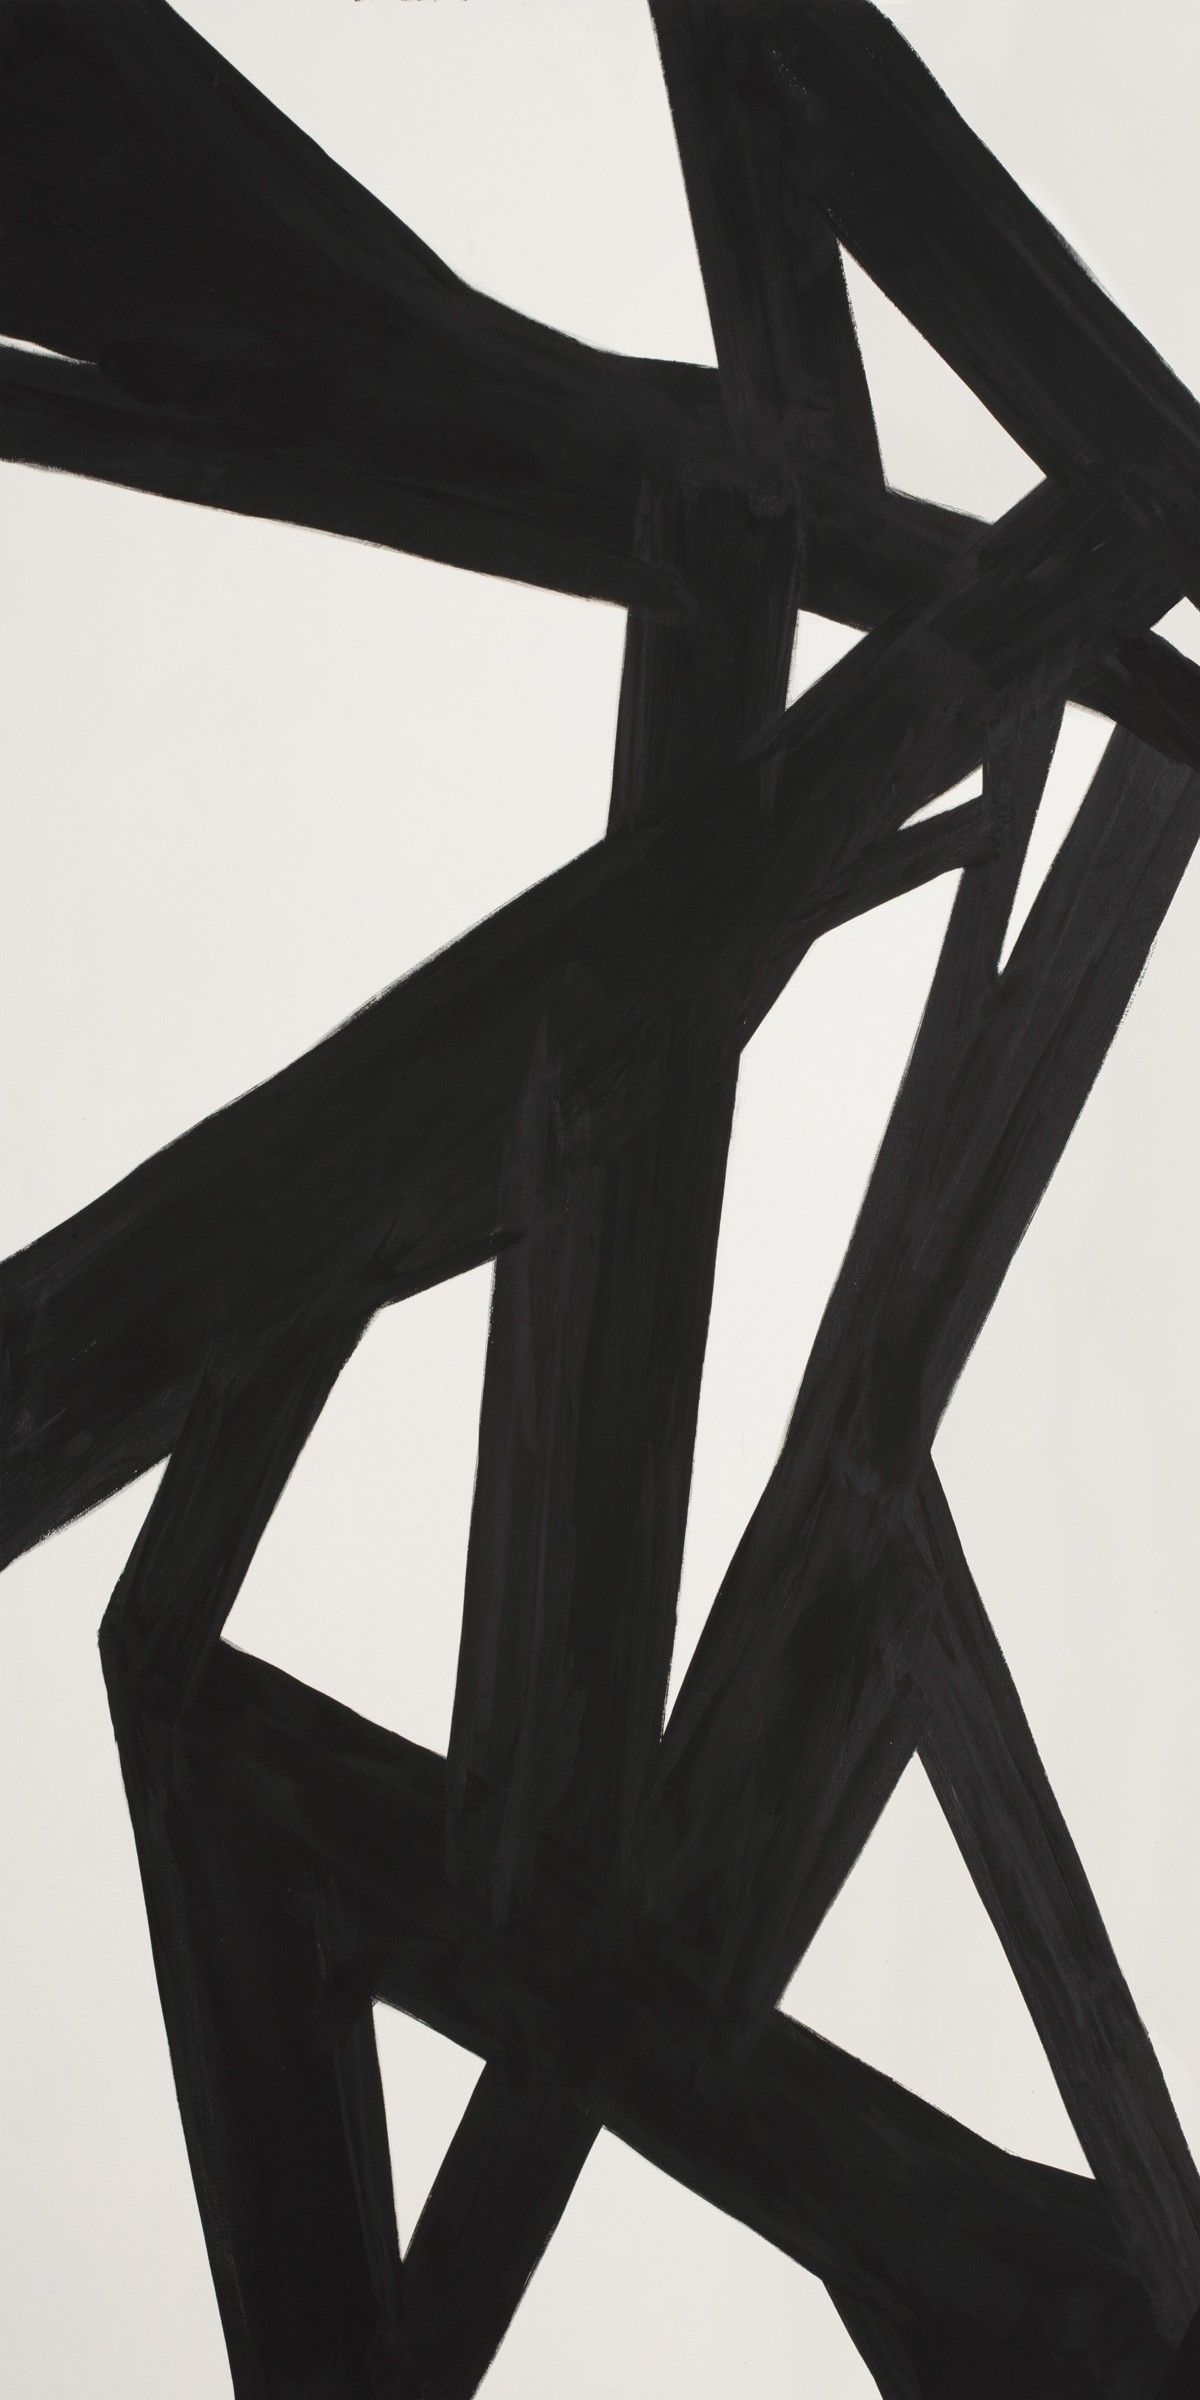 Black & White Abstract Painting, Panel 1 | Modernist ...  Black & White A...